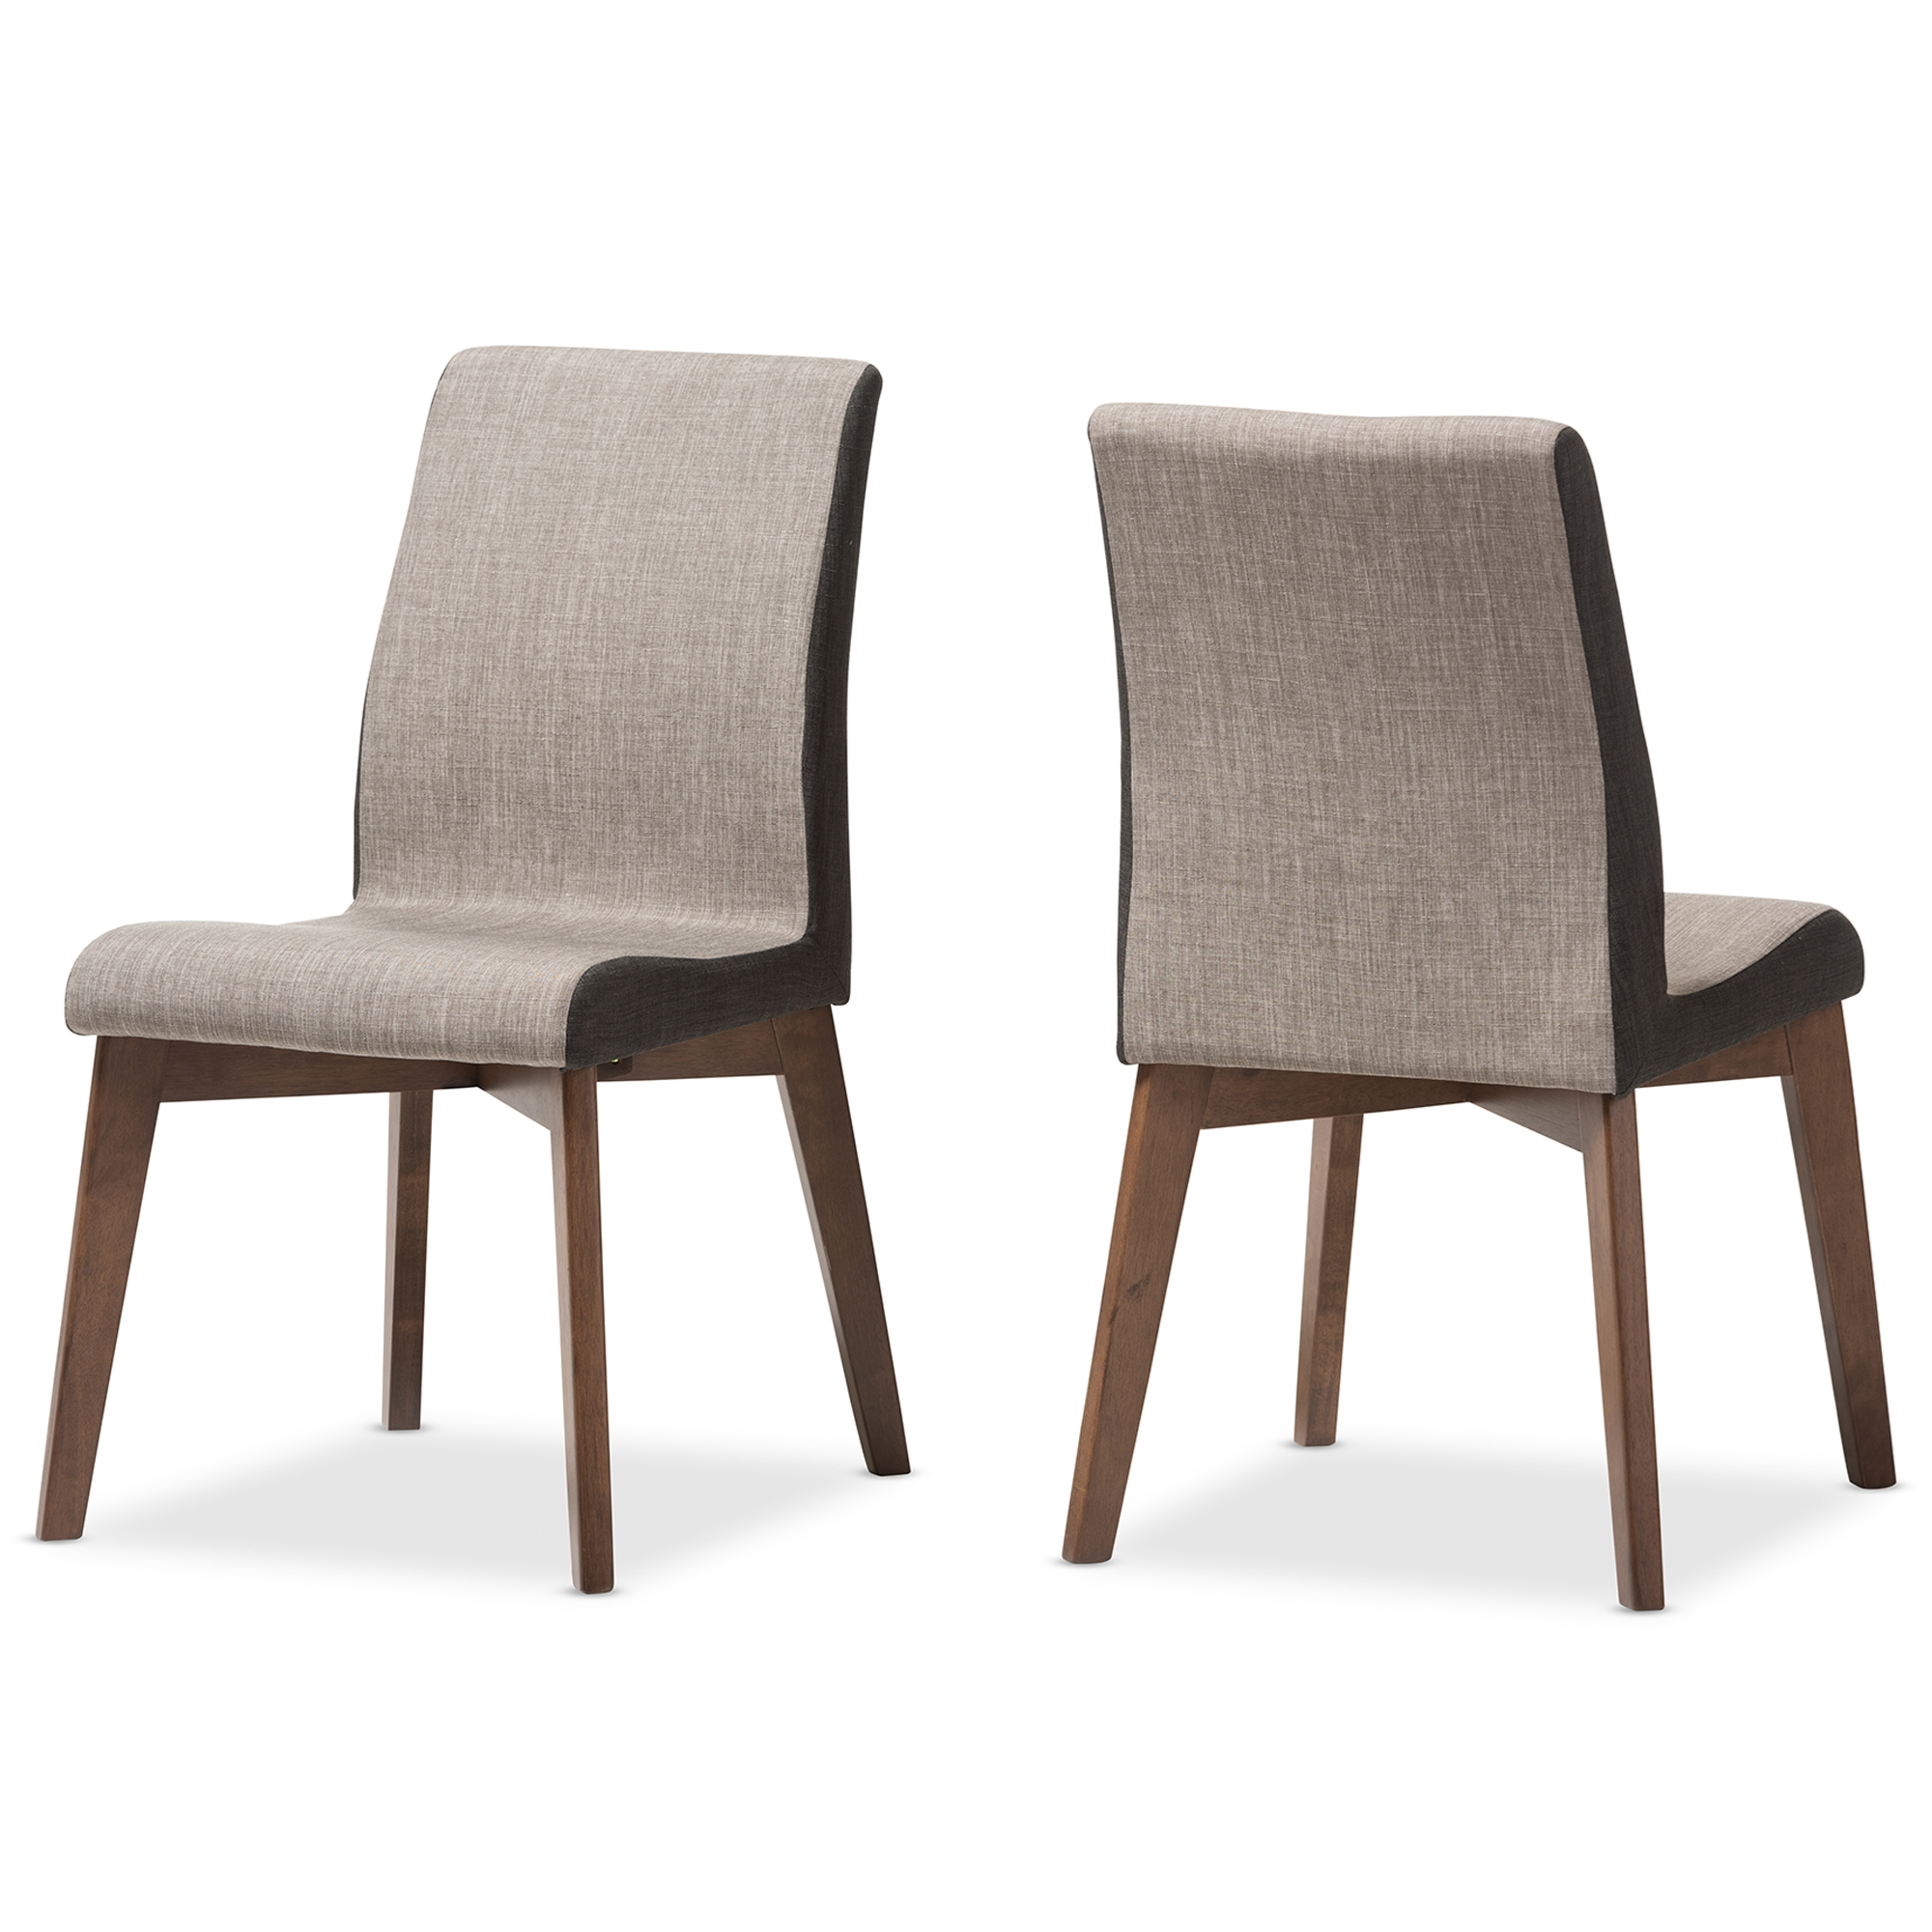 Perfect Baxton Studio Kimberly Mid Century Modern Beige And Brown Fabric Dining  Chair (Set Of